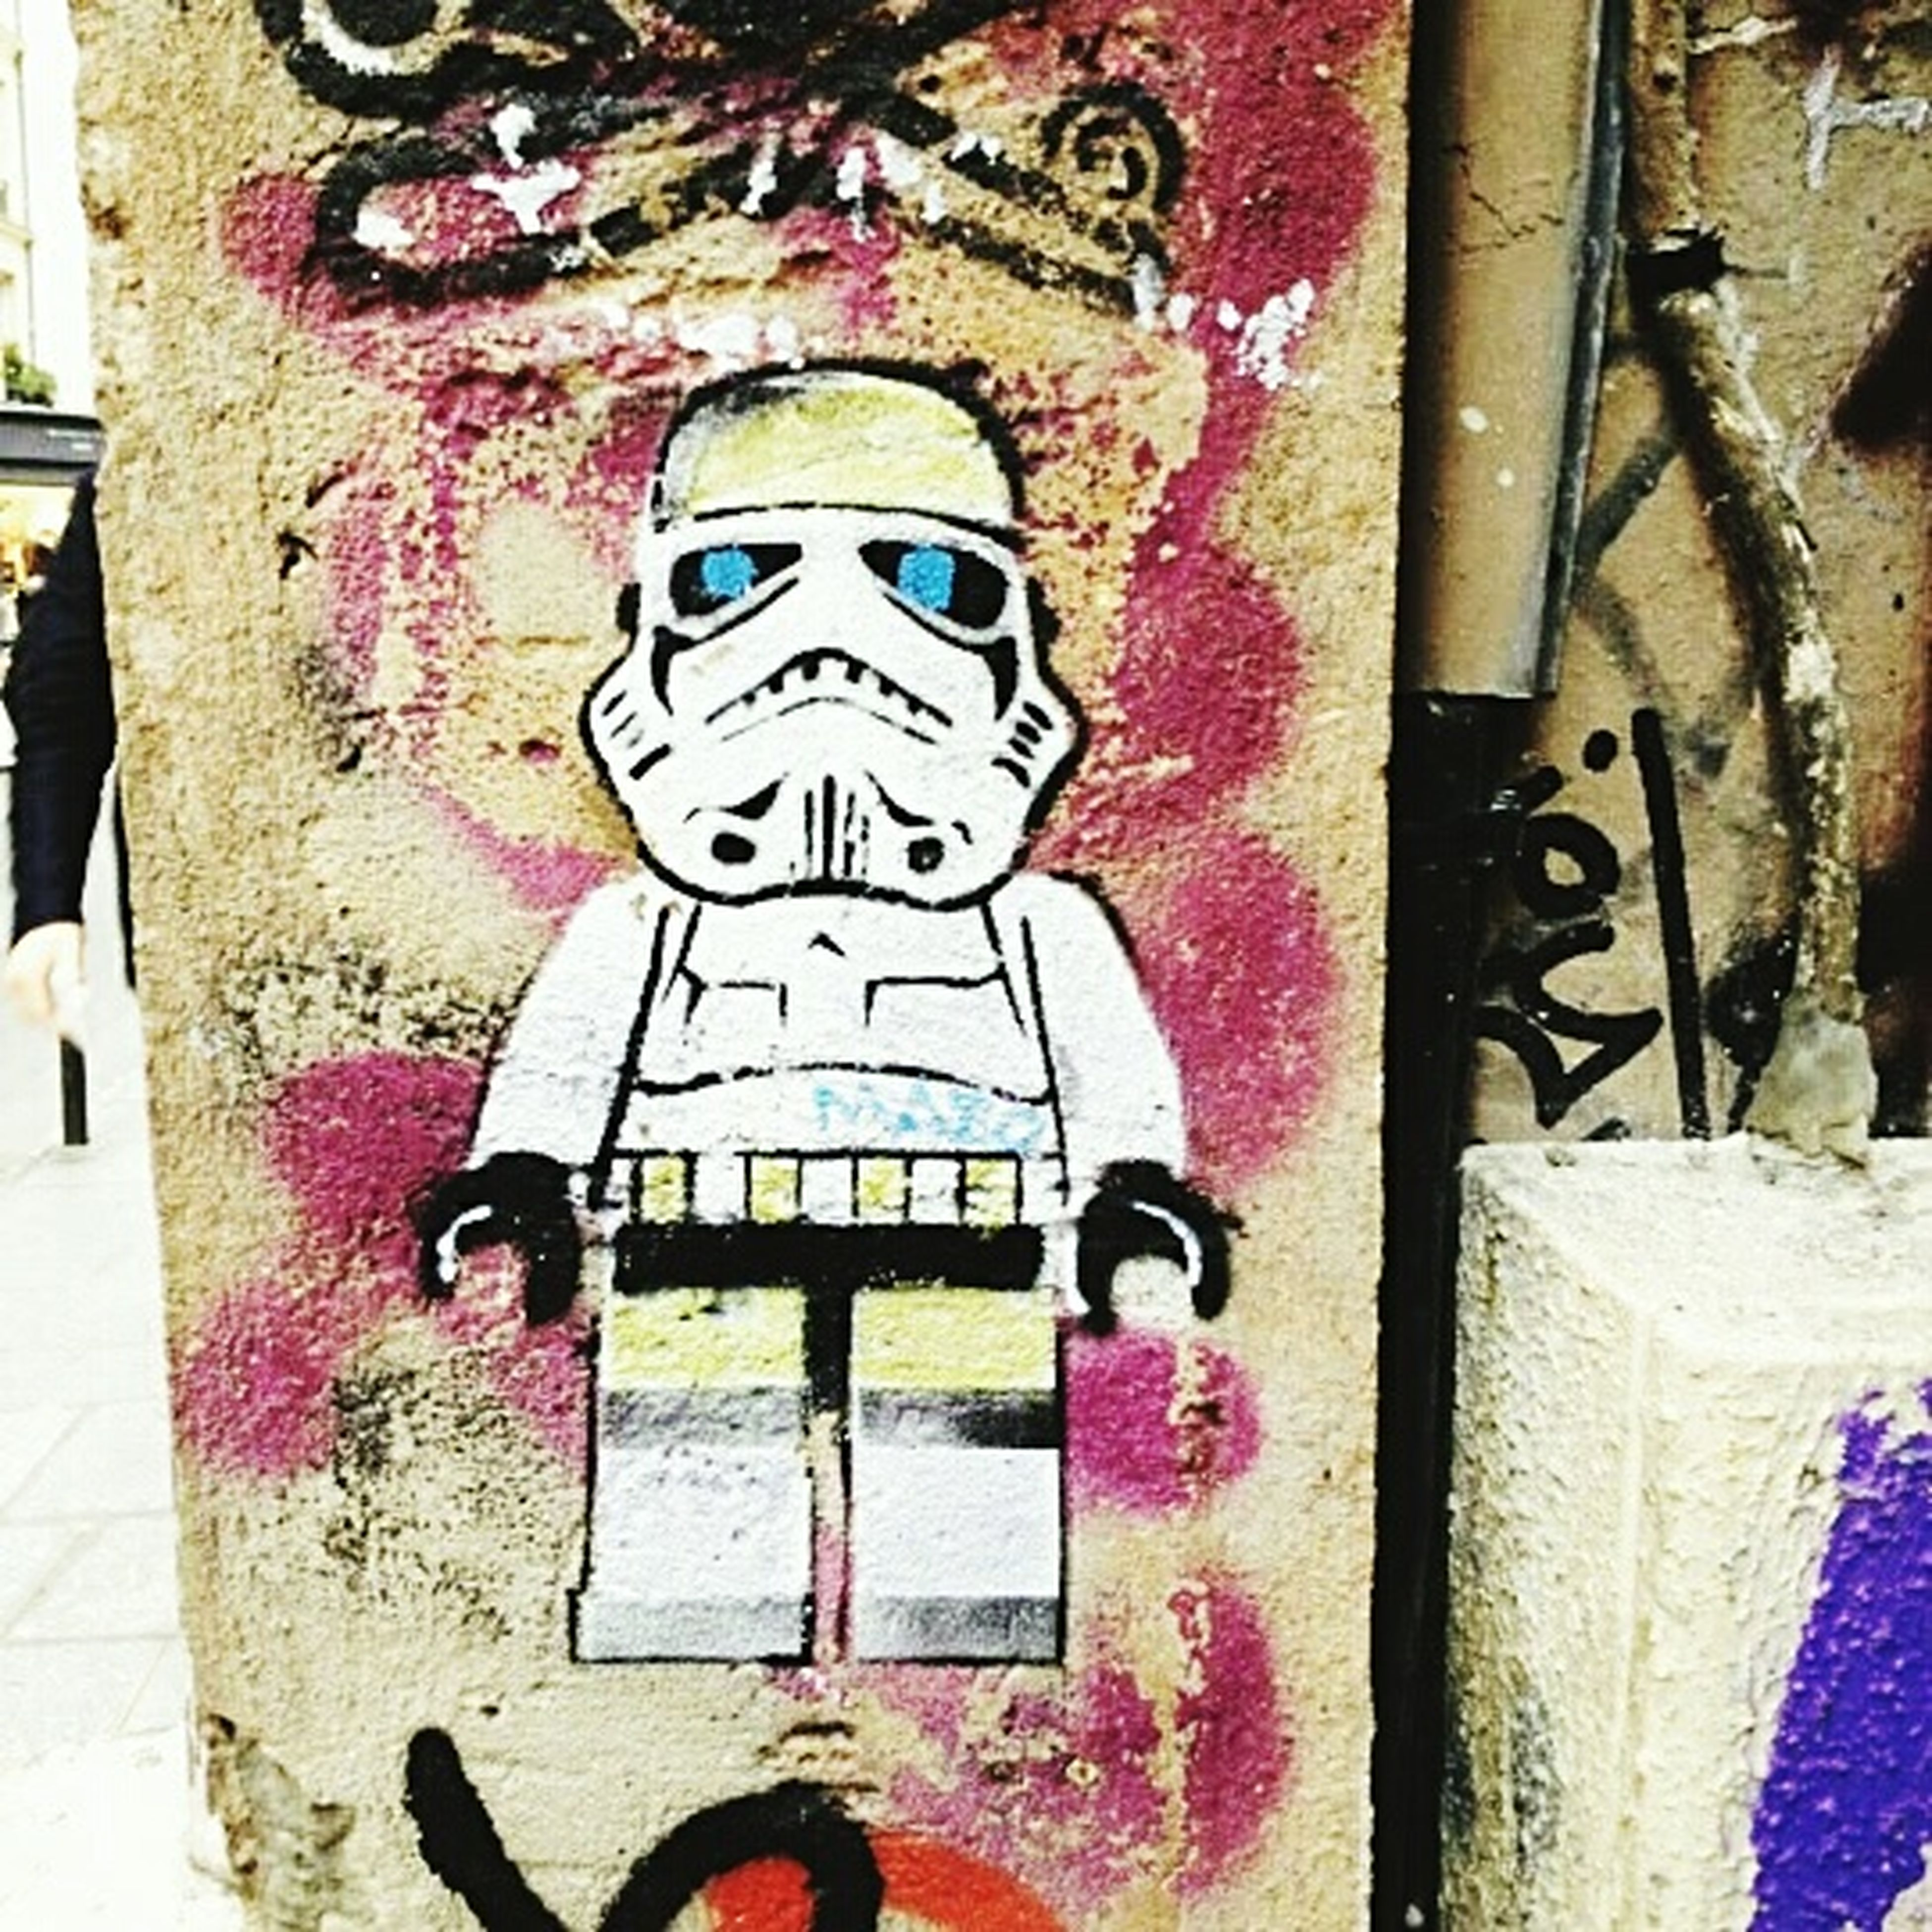 art and craft, art, creativity, wall - building feature, graffiti, built structure, architecture, multi colored, wall, building exterior, human representation, no people, close-up, design, indoors, day, decoration, painting, craft